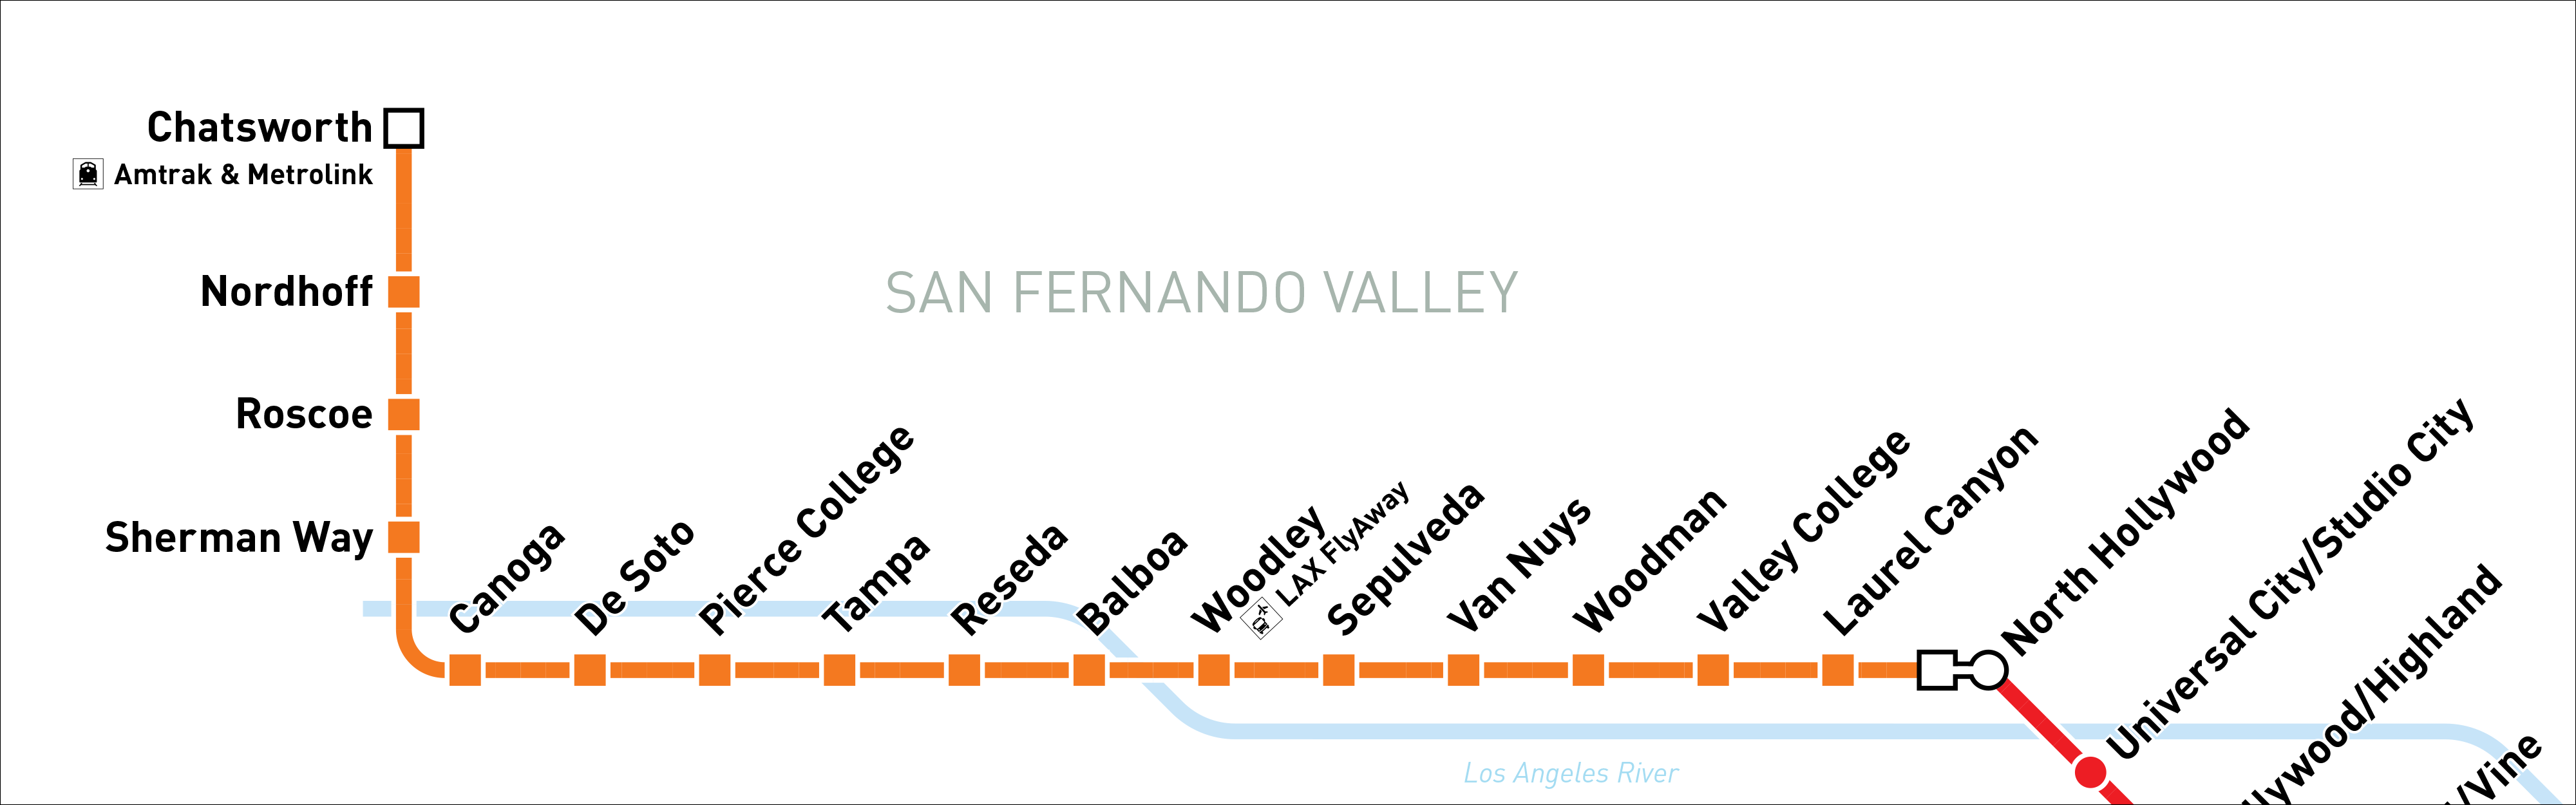 How To Design A Subway Map.Orange Line